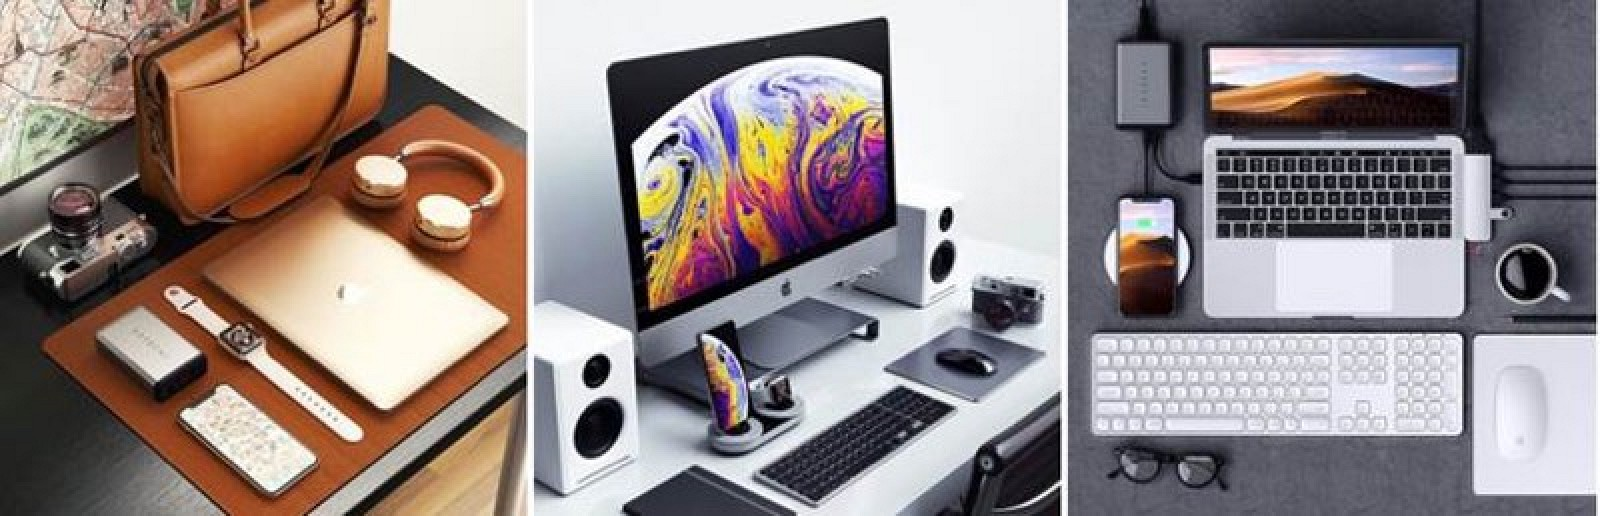 iMac Pro Bundle ($200, discounted from $333) - The bundle includes the not yet released iMac Stand (goes officially on sale in December), a Bluetooth Keyboard, Aluminum Mousepad, R1 Stand, R1 Laptop Stand, Lightning Charging Stand, Bluetooth Headphones, Slim Headphone Stand.  MacBook Pro Bundle ($200, discounted from $300) - Products include Satechi's Type-C 75W Travel Charger, Type-C Pro Adapter with Ethernet, Bluetooth Keyboard, Aluminum Mousepad and the newest Type-C Wireless Charger.  Family Bundle ($99, discounted from $148) - The bundle includes the popular 7-Port USB Charging Station, Flexible 6-inch Lightning and Micro USB cables and the newest Satechi Type-C Wireless Charger.